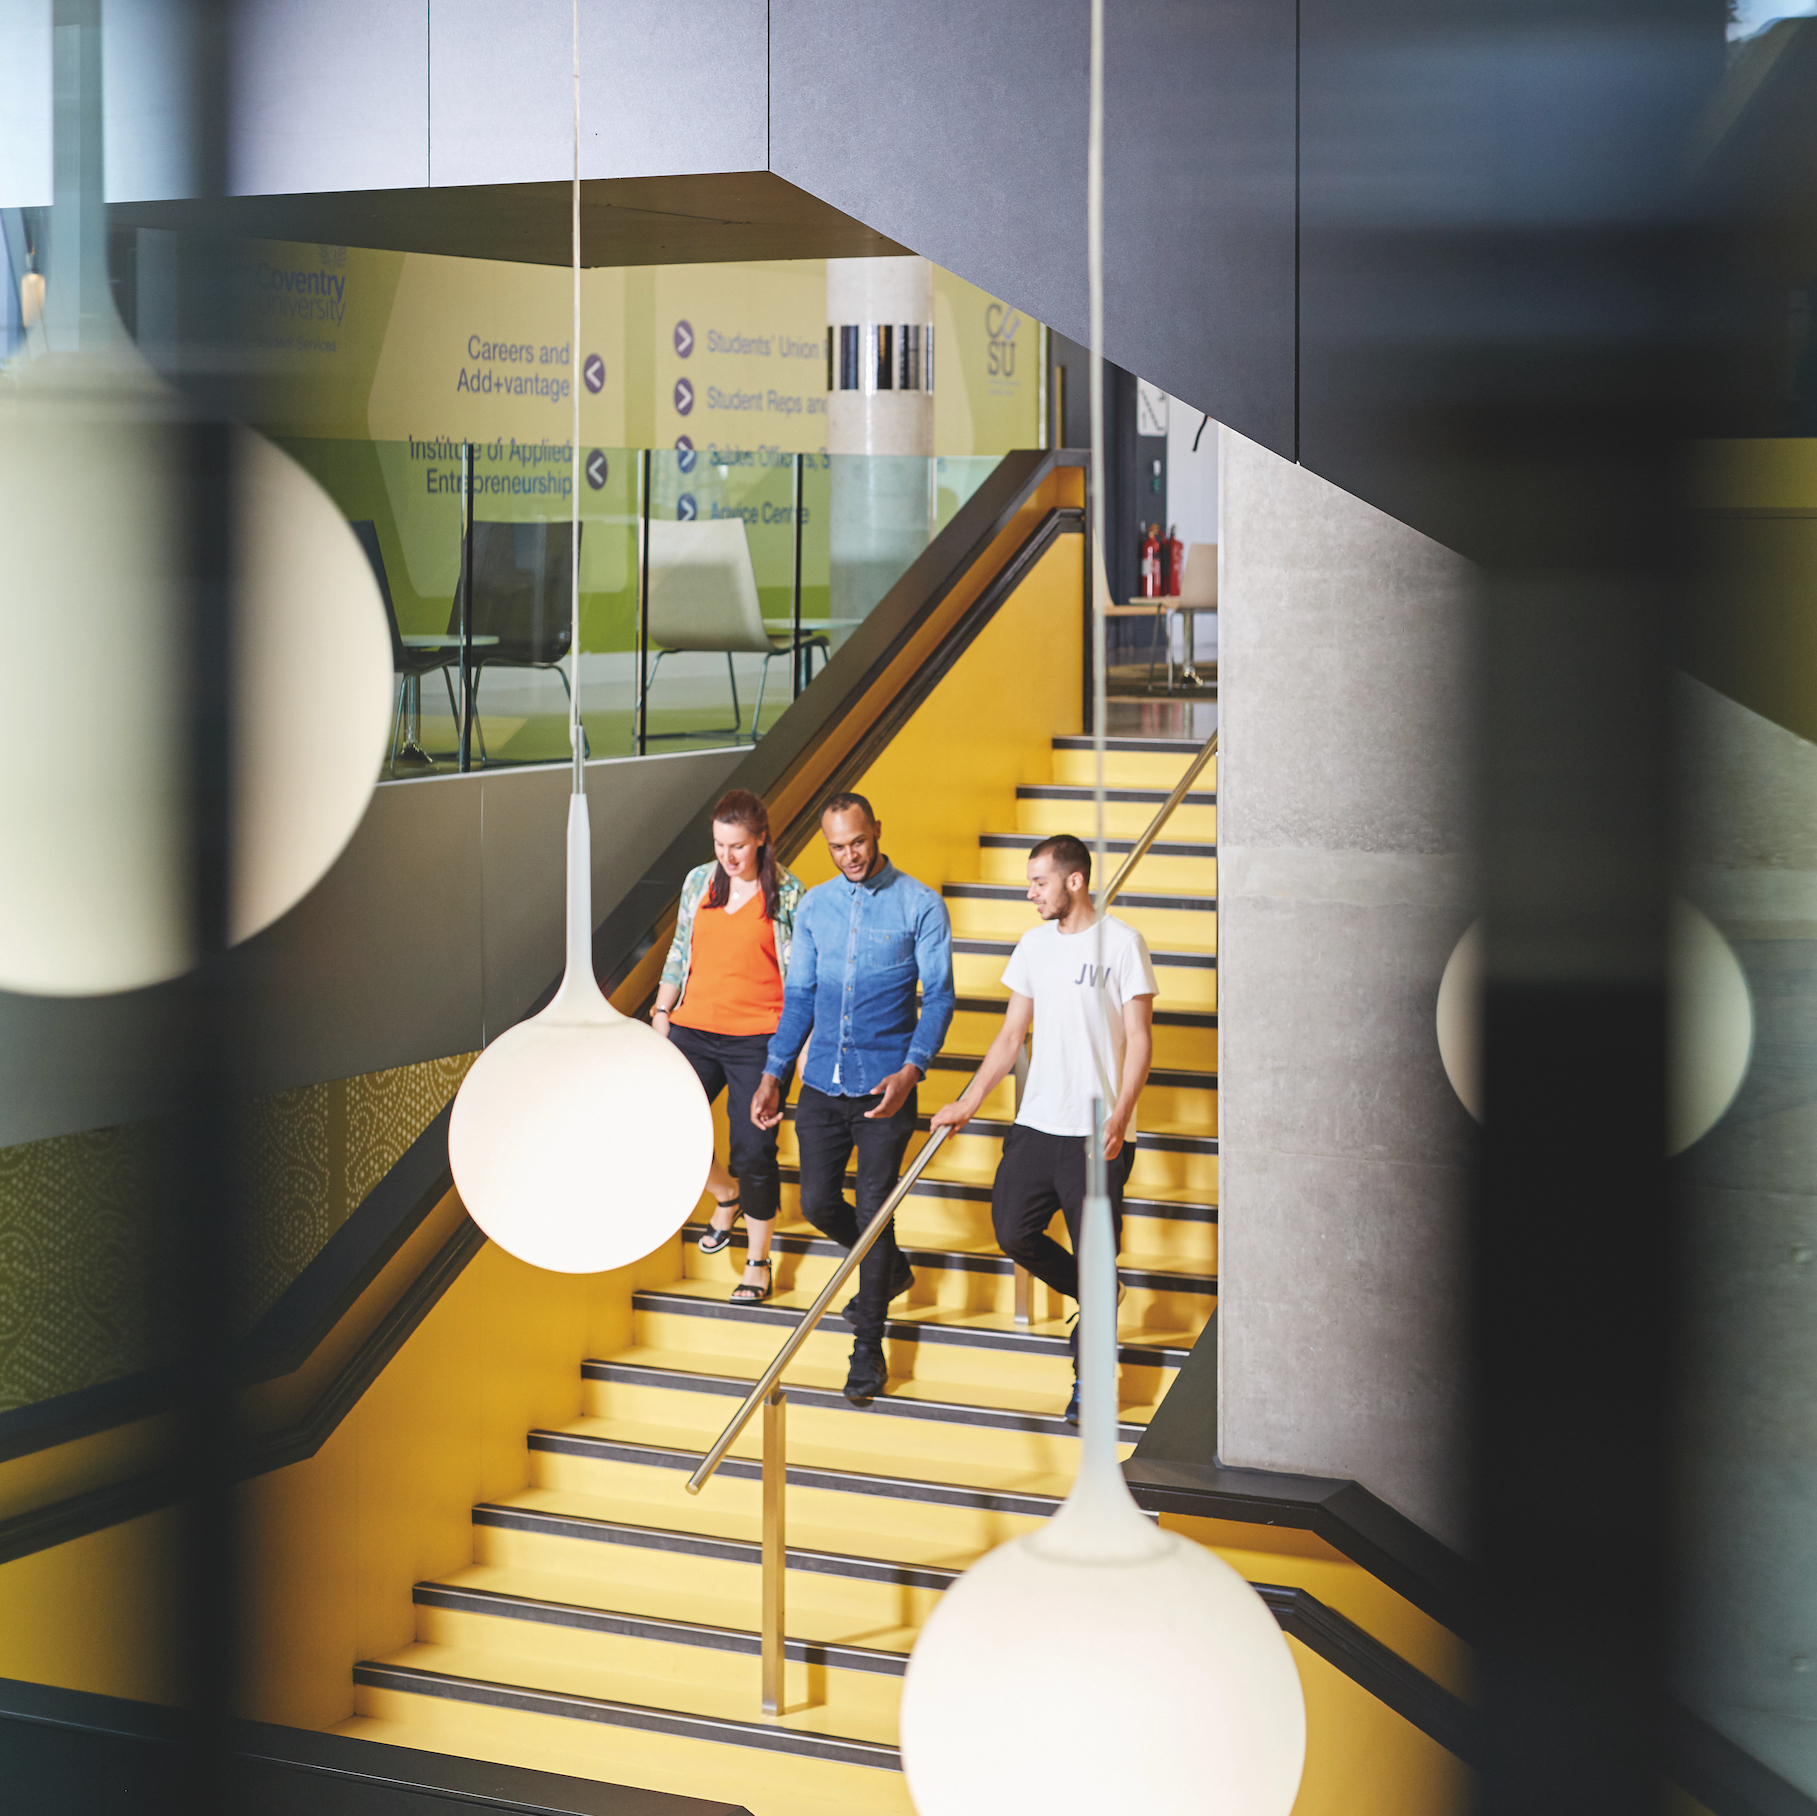 Photograph of students walking down some stairs at Coventry University.